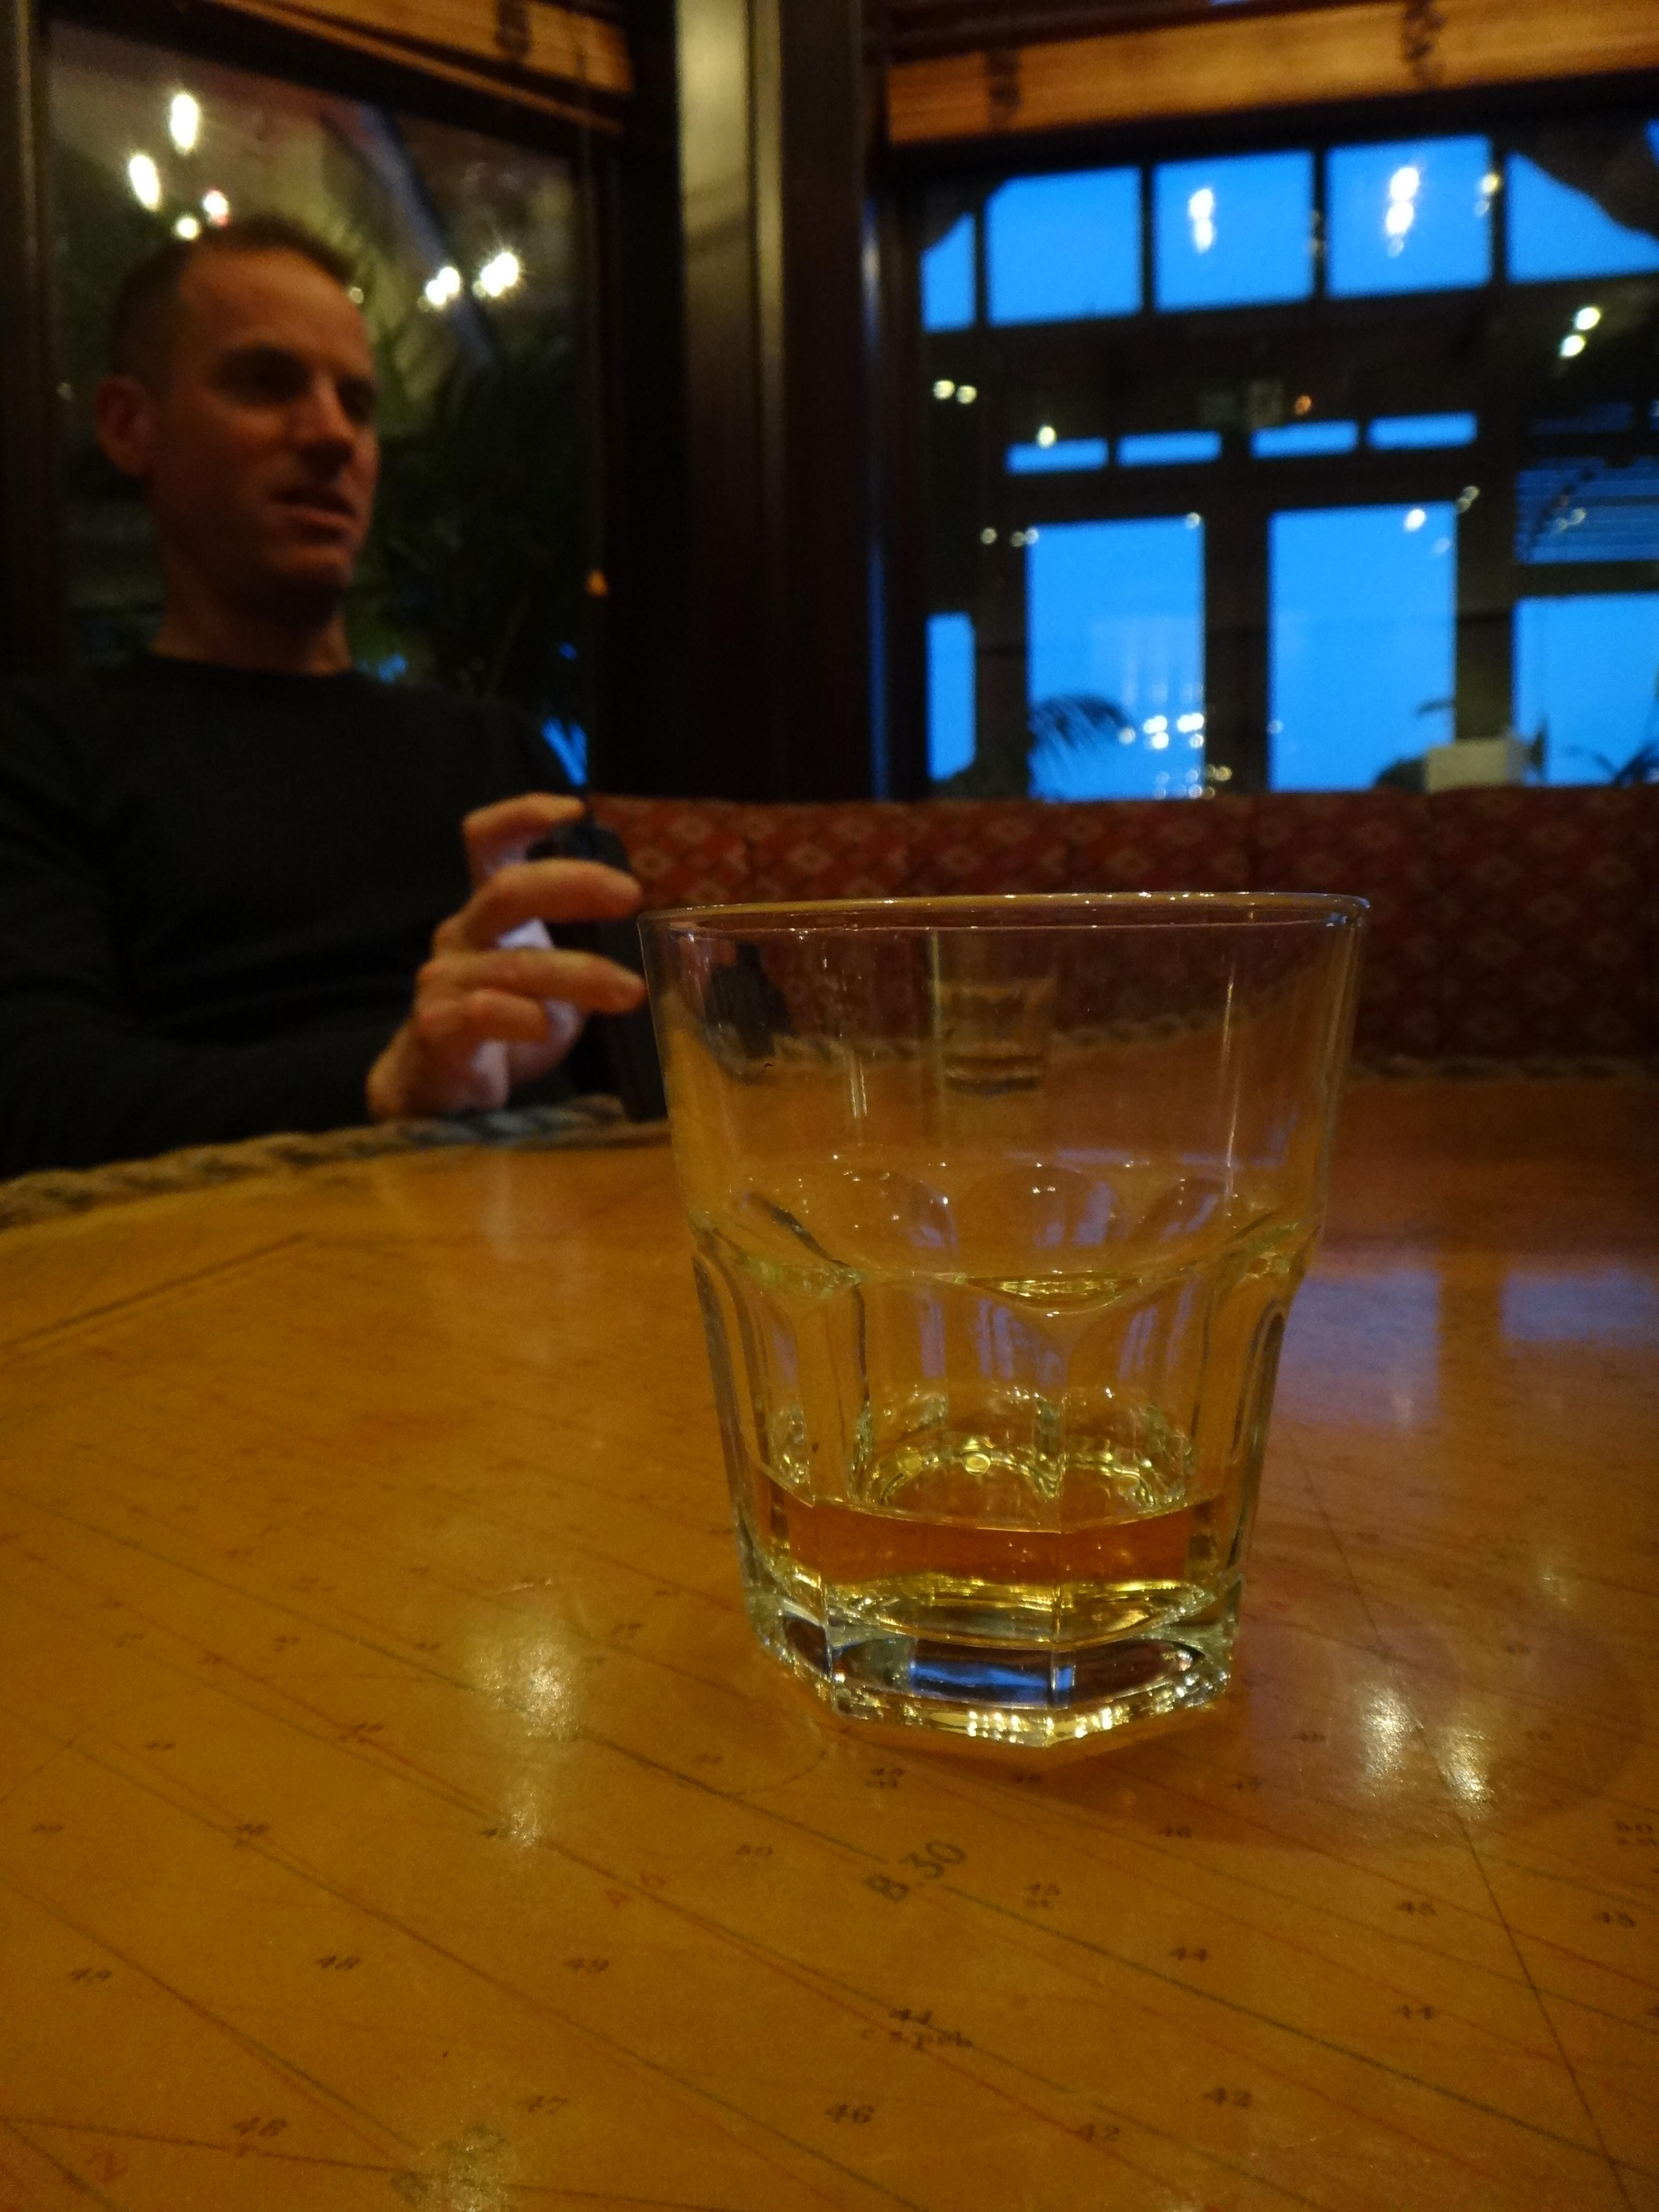 Talisker: a taste of what is to come